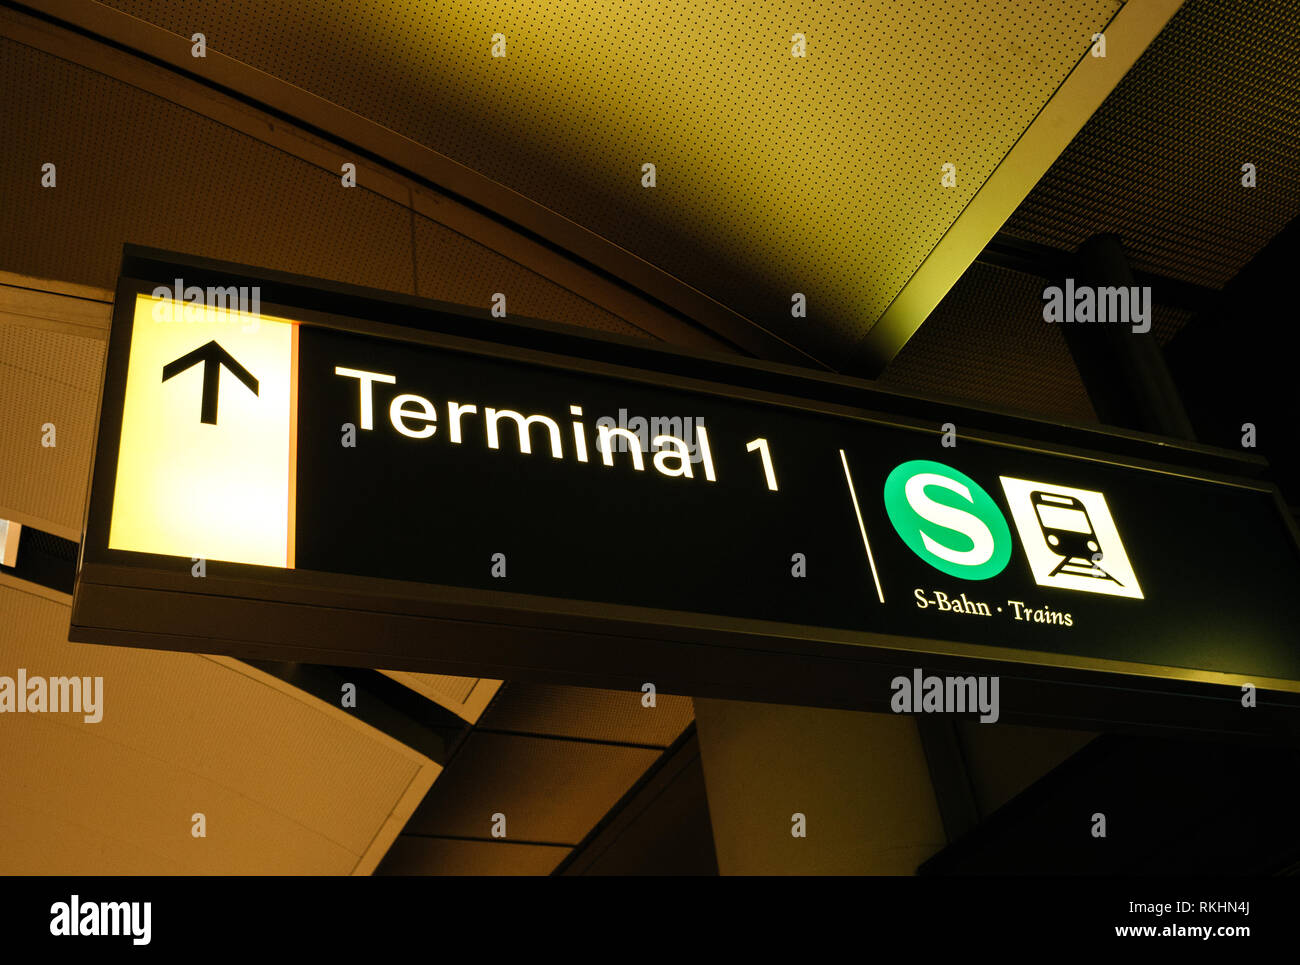 HAMBURG, GERMANY - MAR 20, 2018: Airport sign Terminal 1 with access to the train and metro - view from below S-Bahn - Stock Image